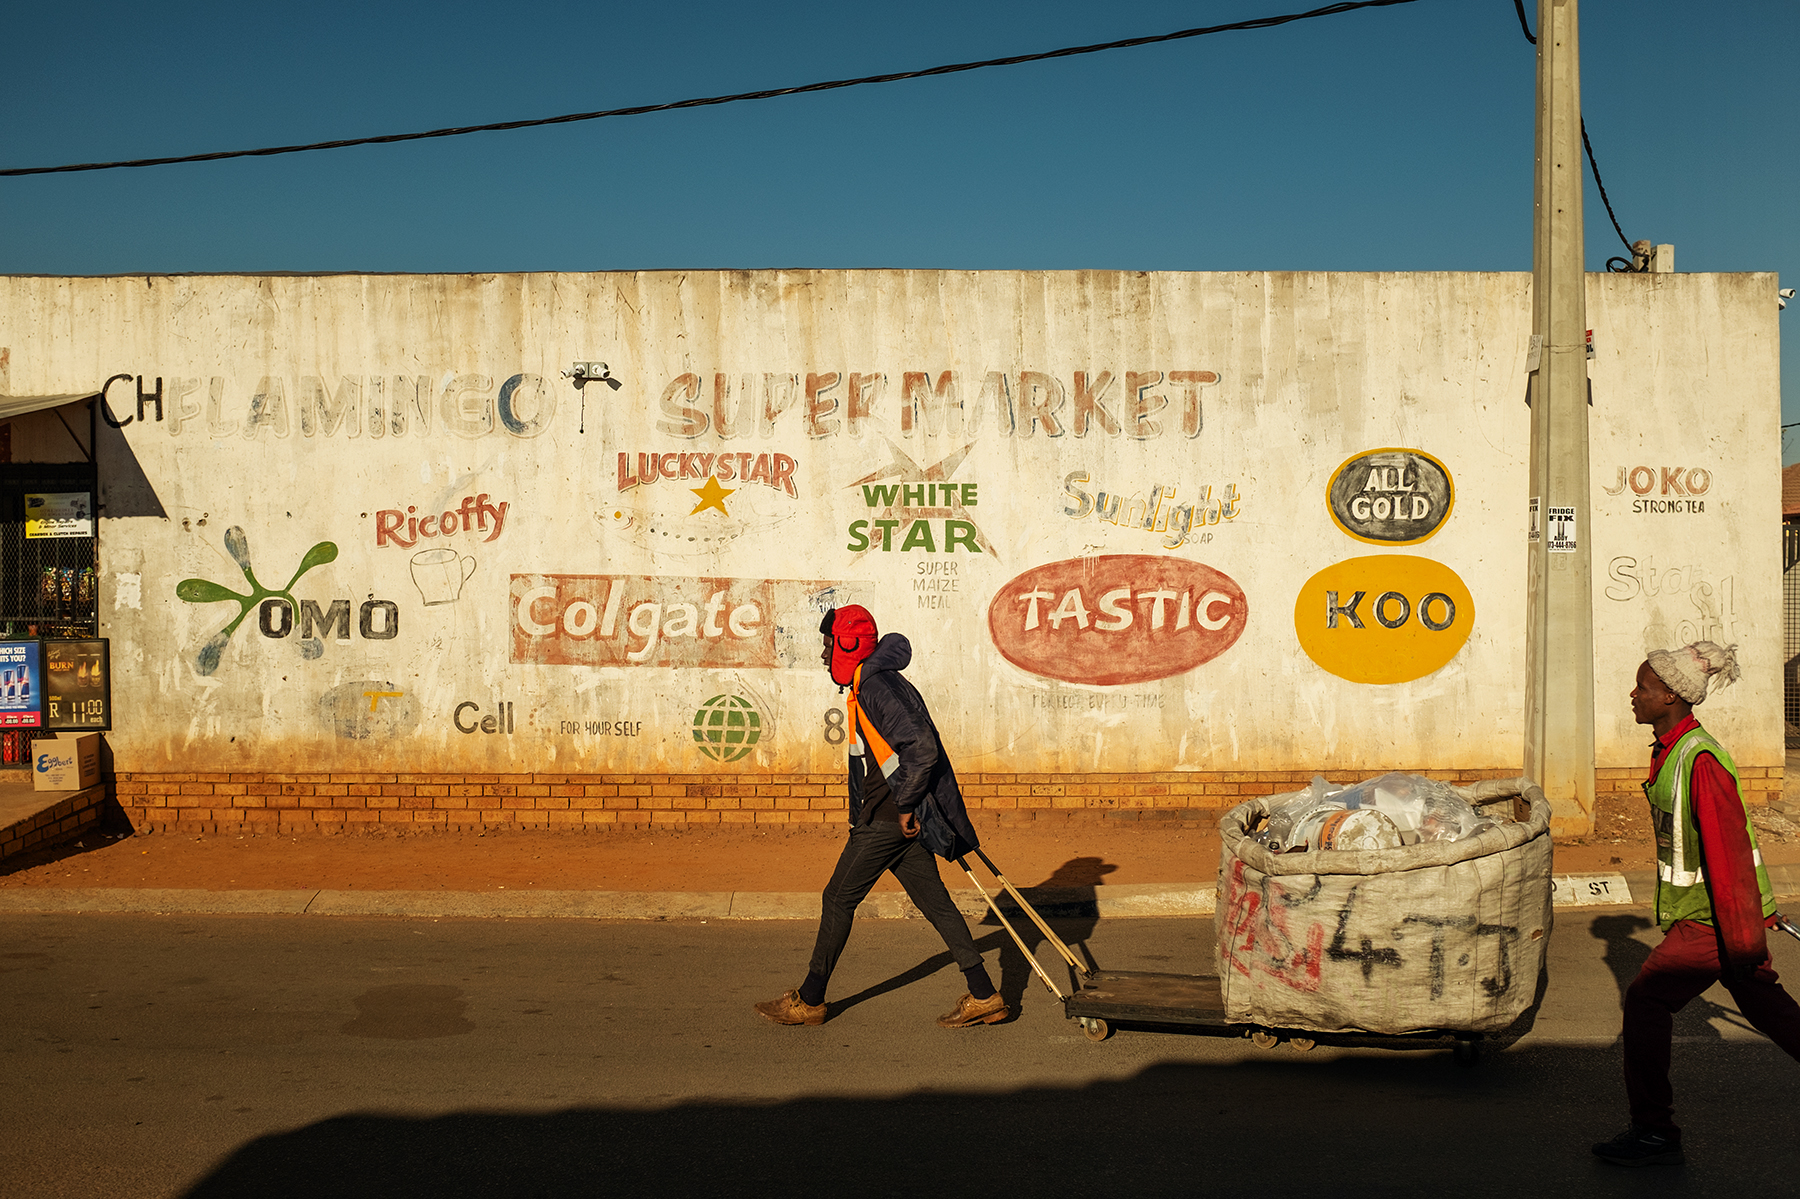 Scelo Sithole, 38, and Tumelo Ikaneng, 21, carry their trolleys filled with waste collected from trash bins in Johannebsurg, South Africa in the early morning of June 12, 2019.